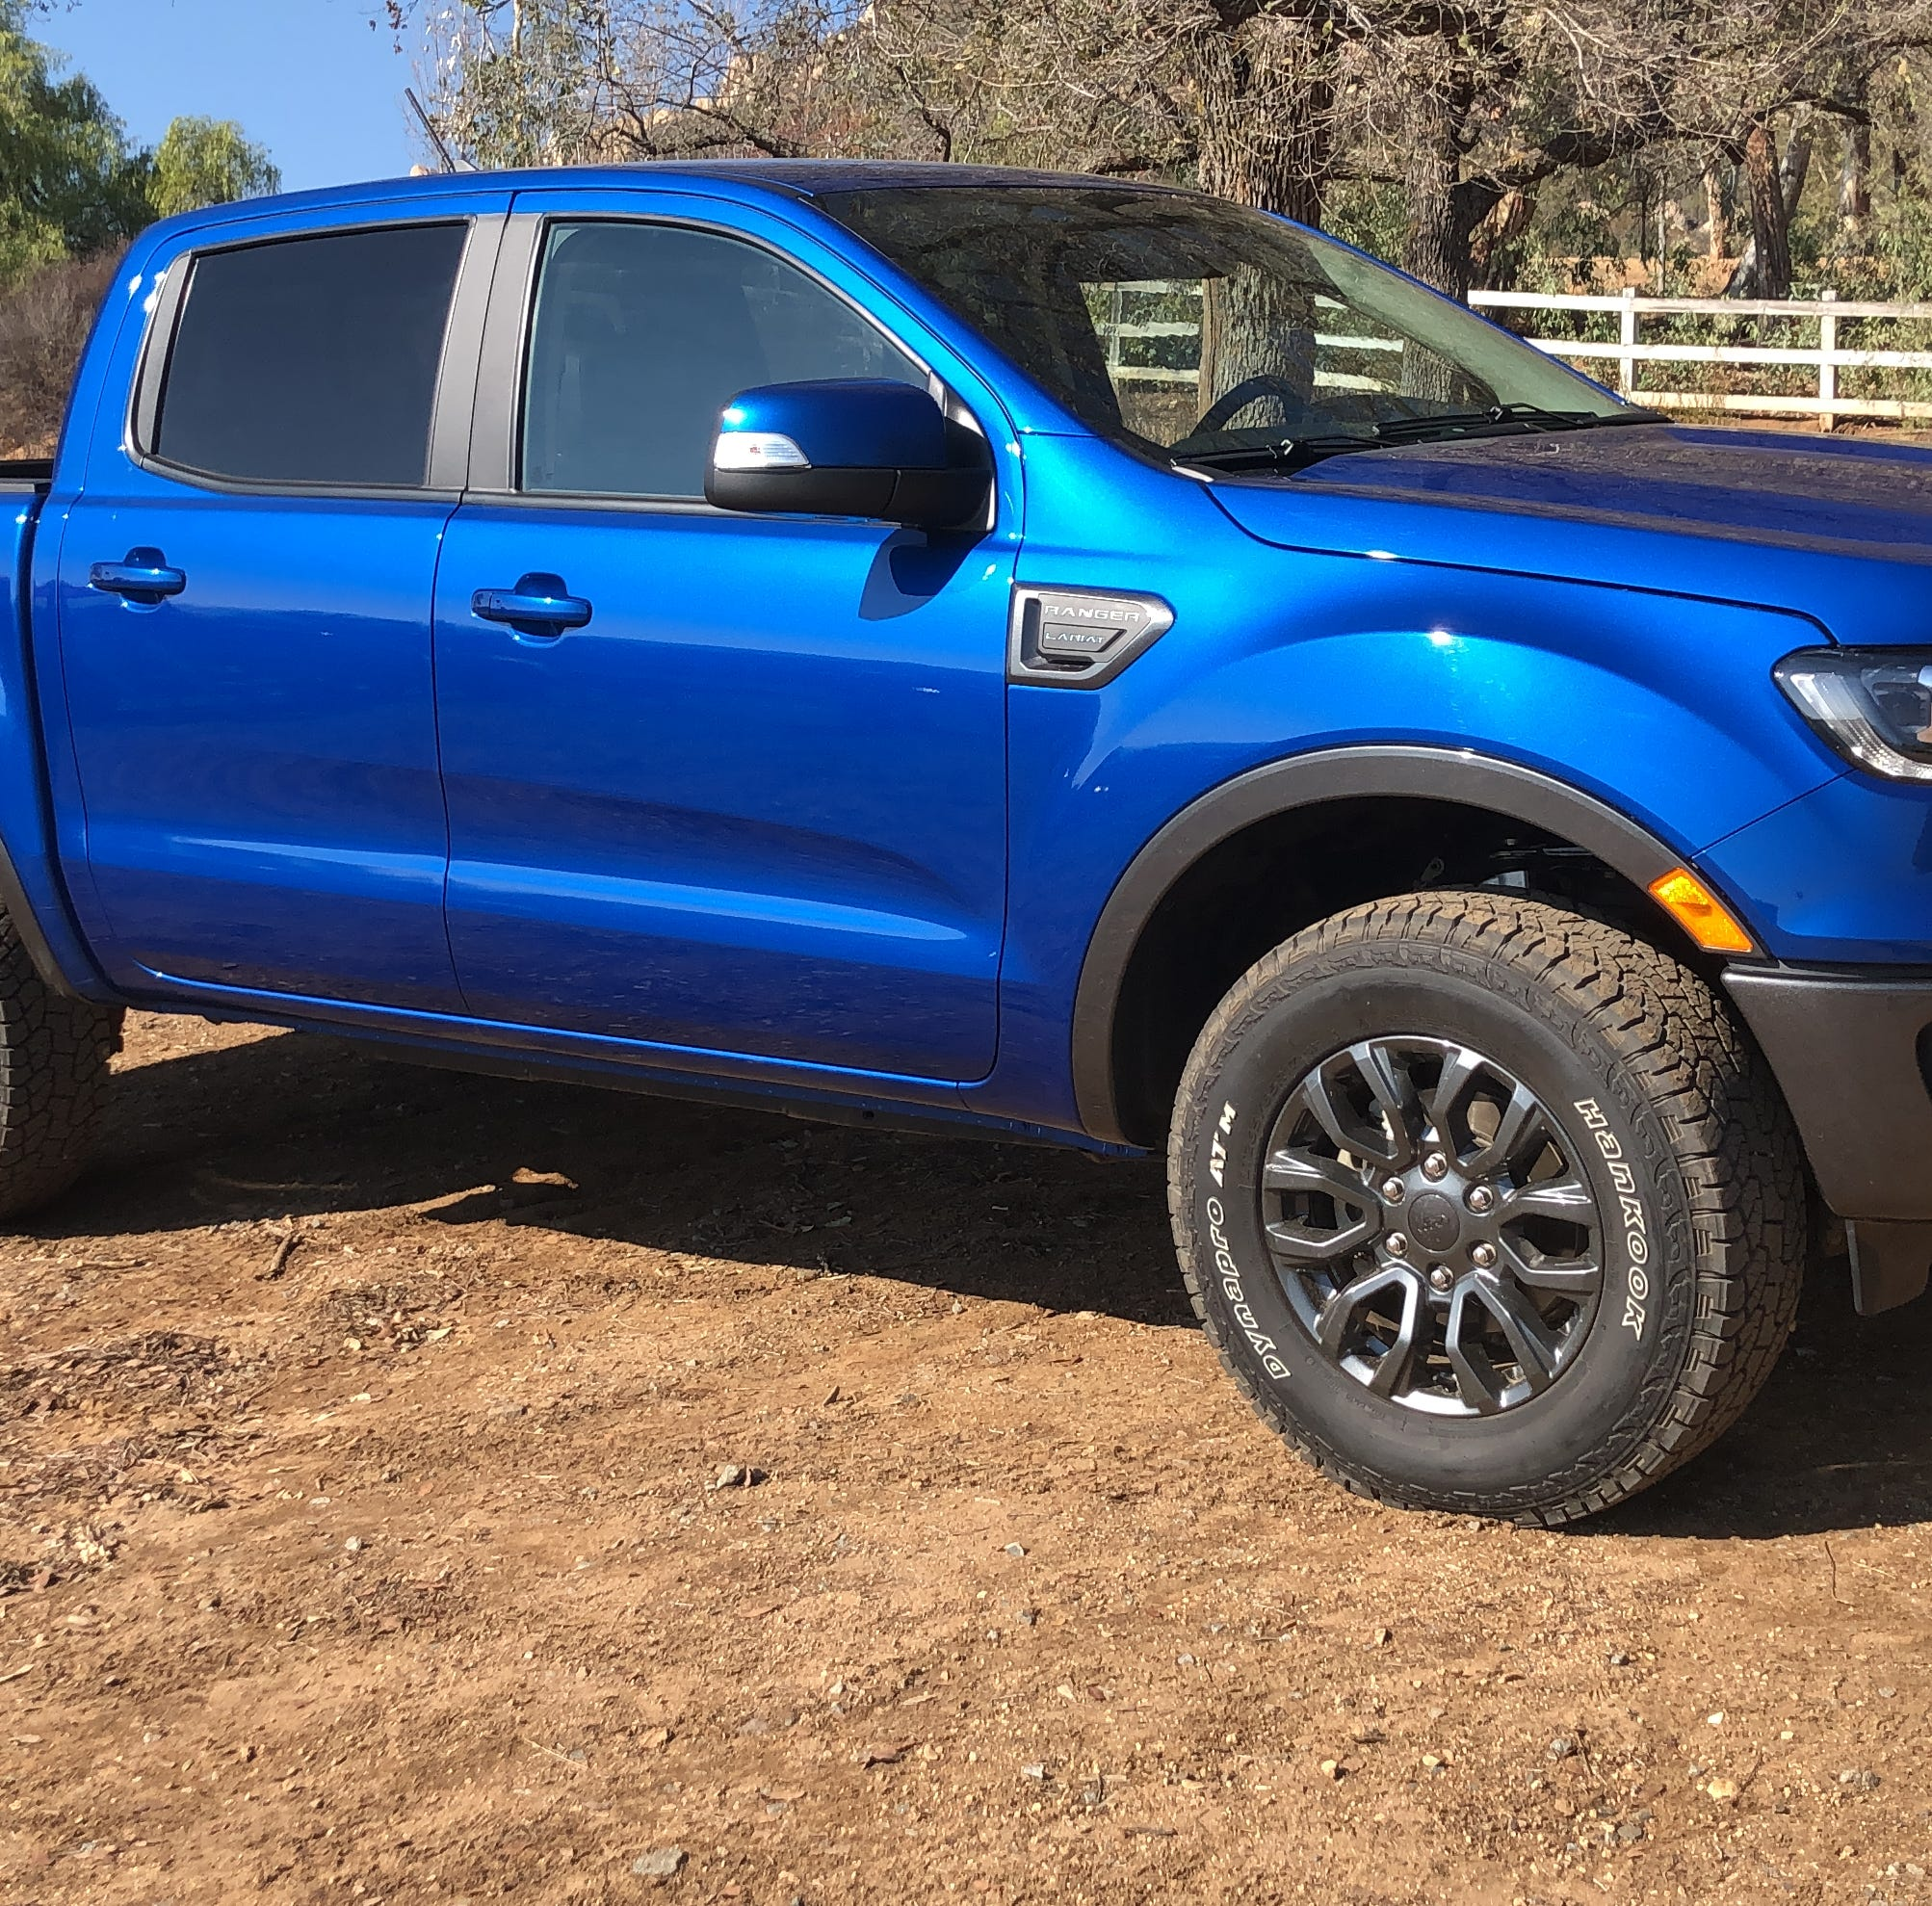 First Drive: 2019 Ford Ranger stakes its claim to be No. 1 midsize pickup